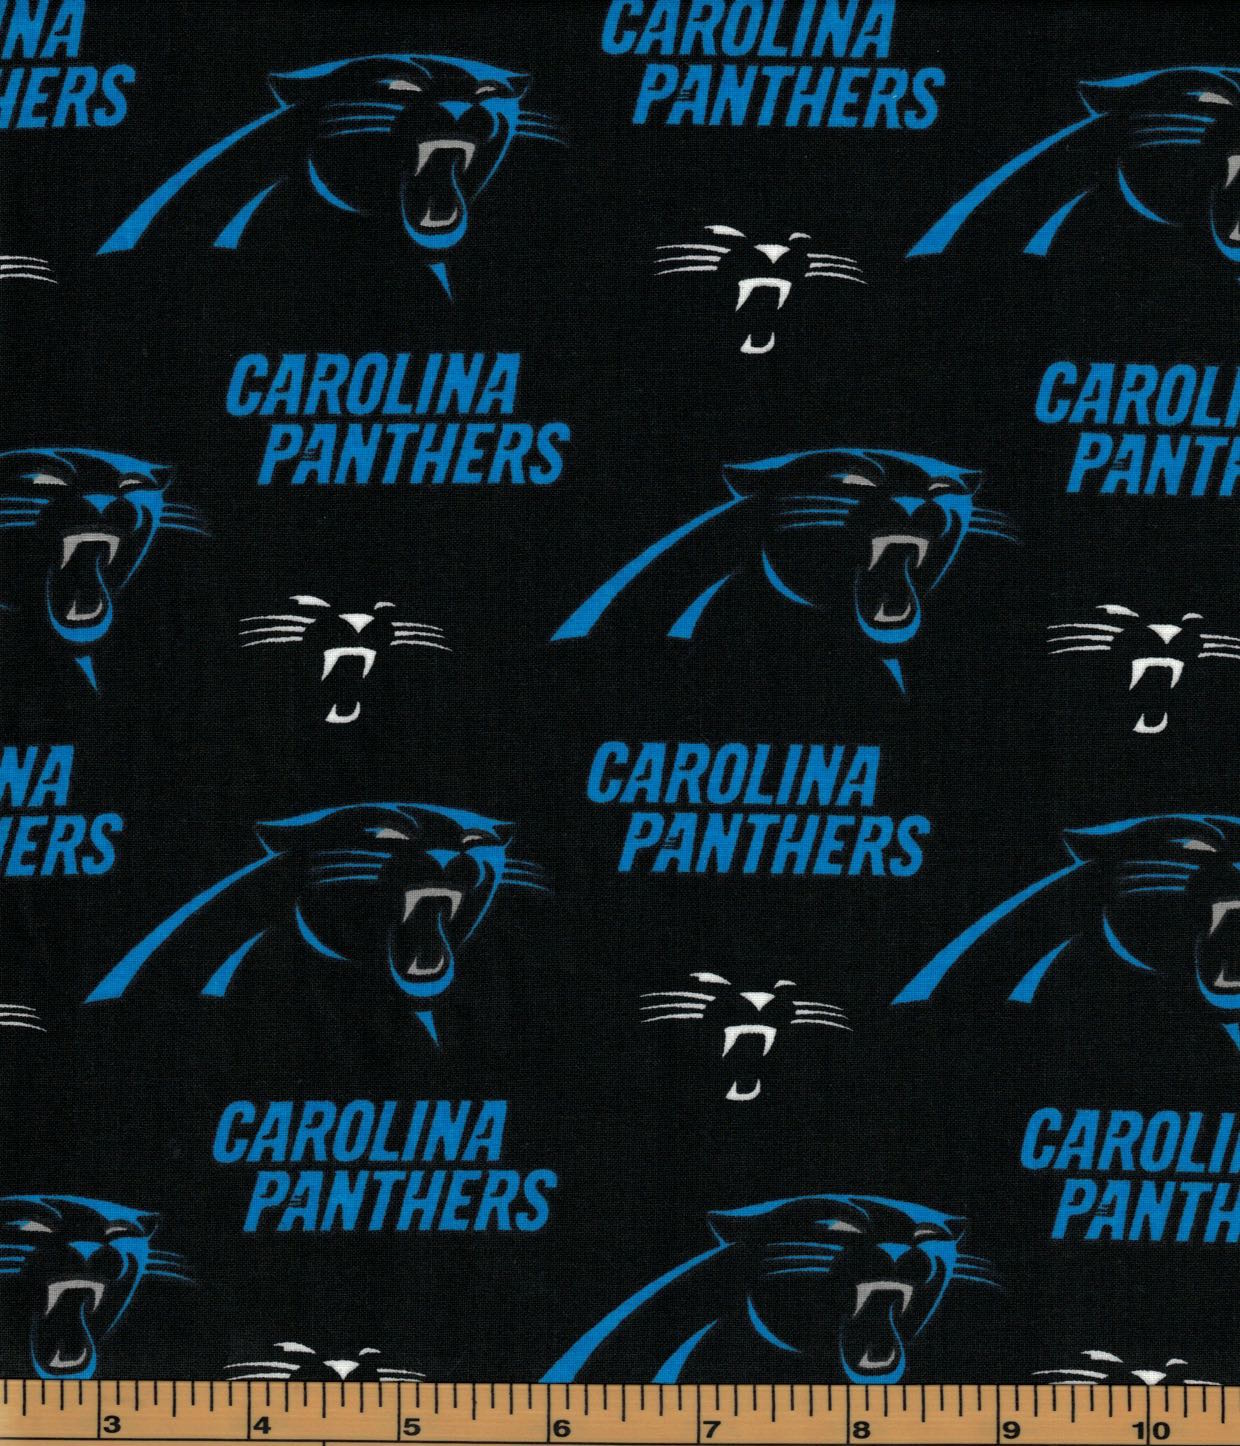 Carolina Panthers Fabric- NFL - 100% Cotton High Quality Fabric- by Fabric Traditions